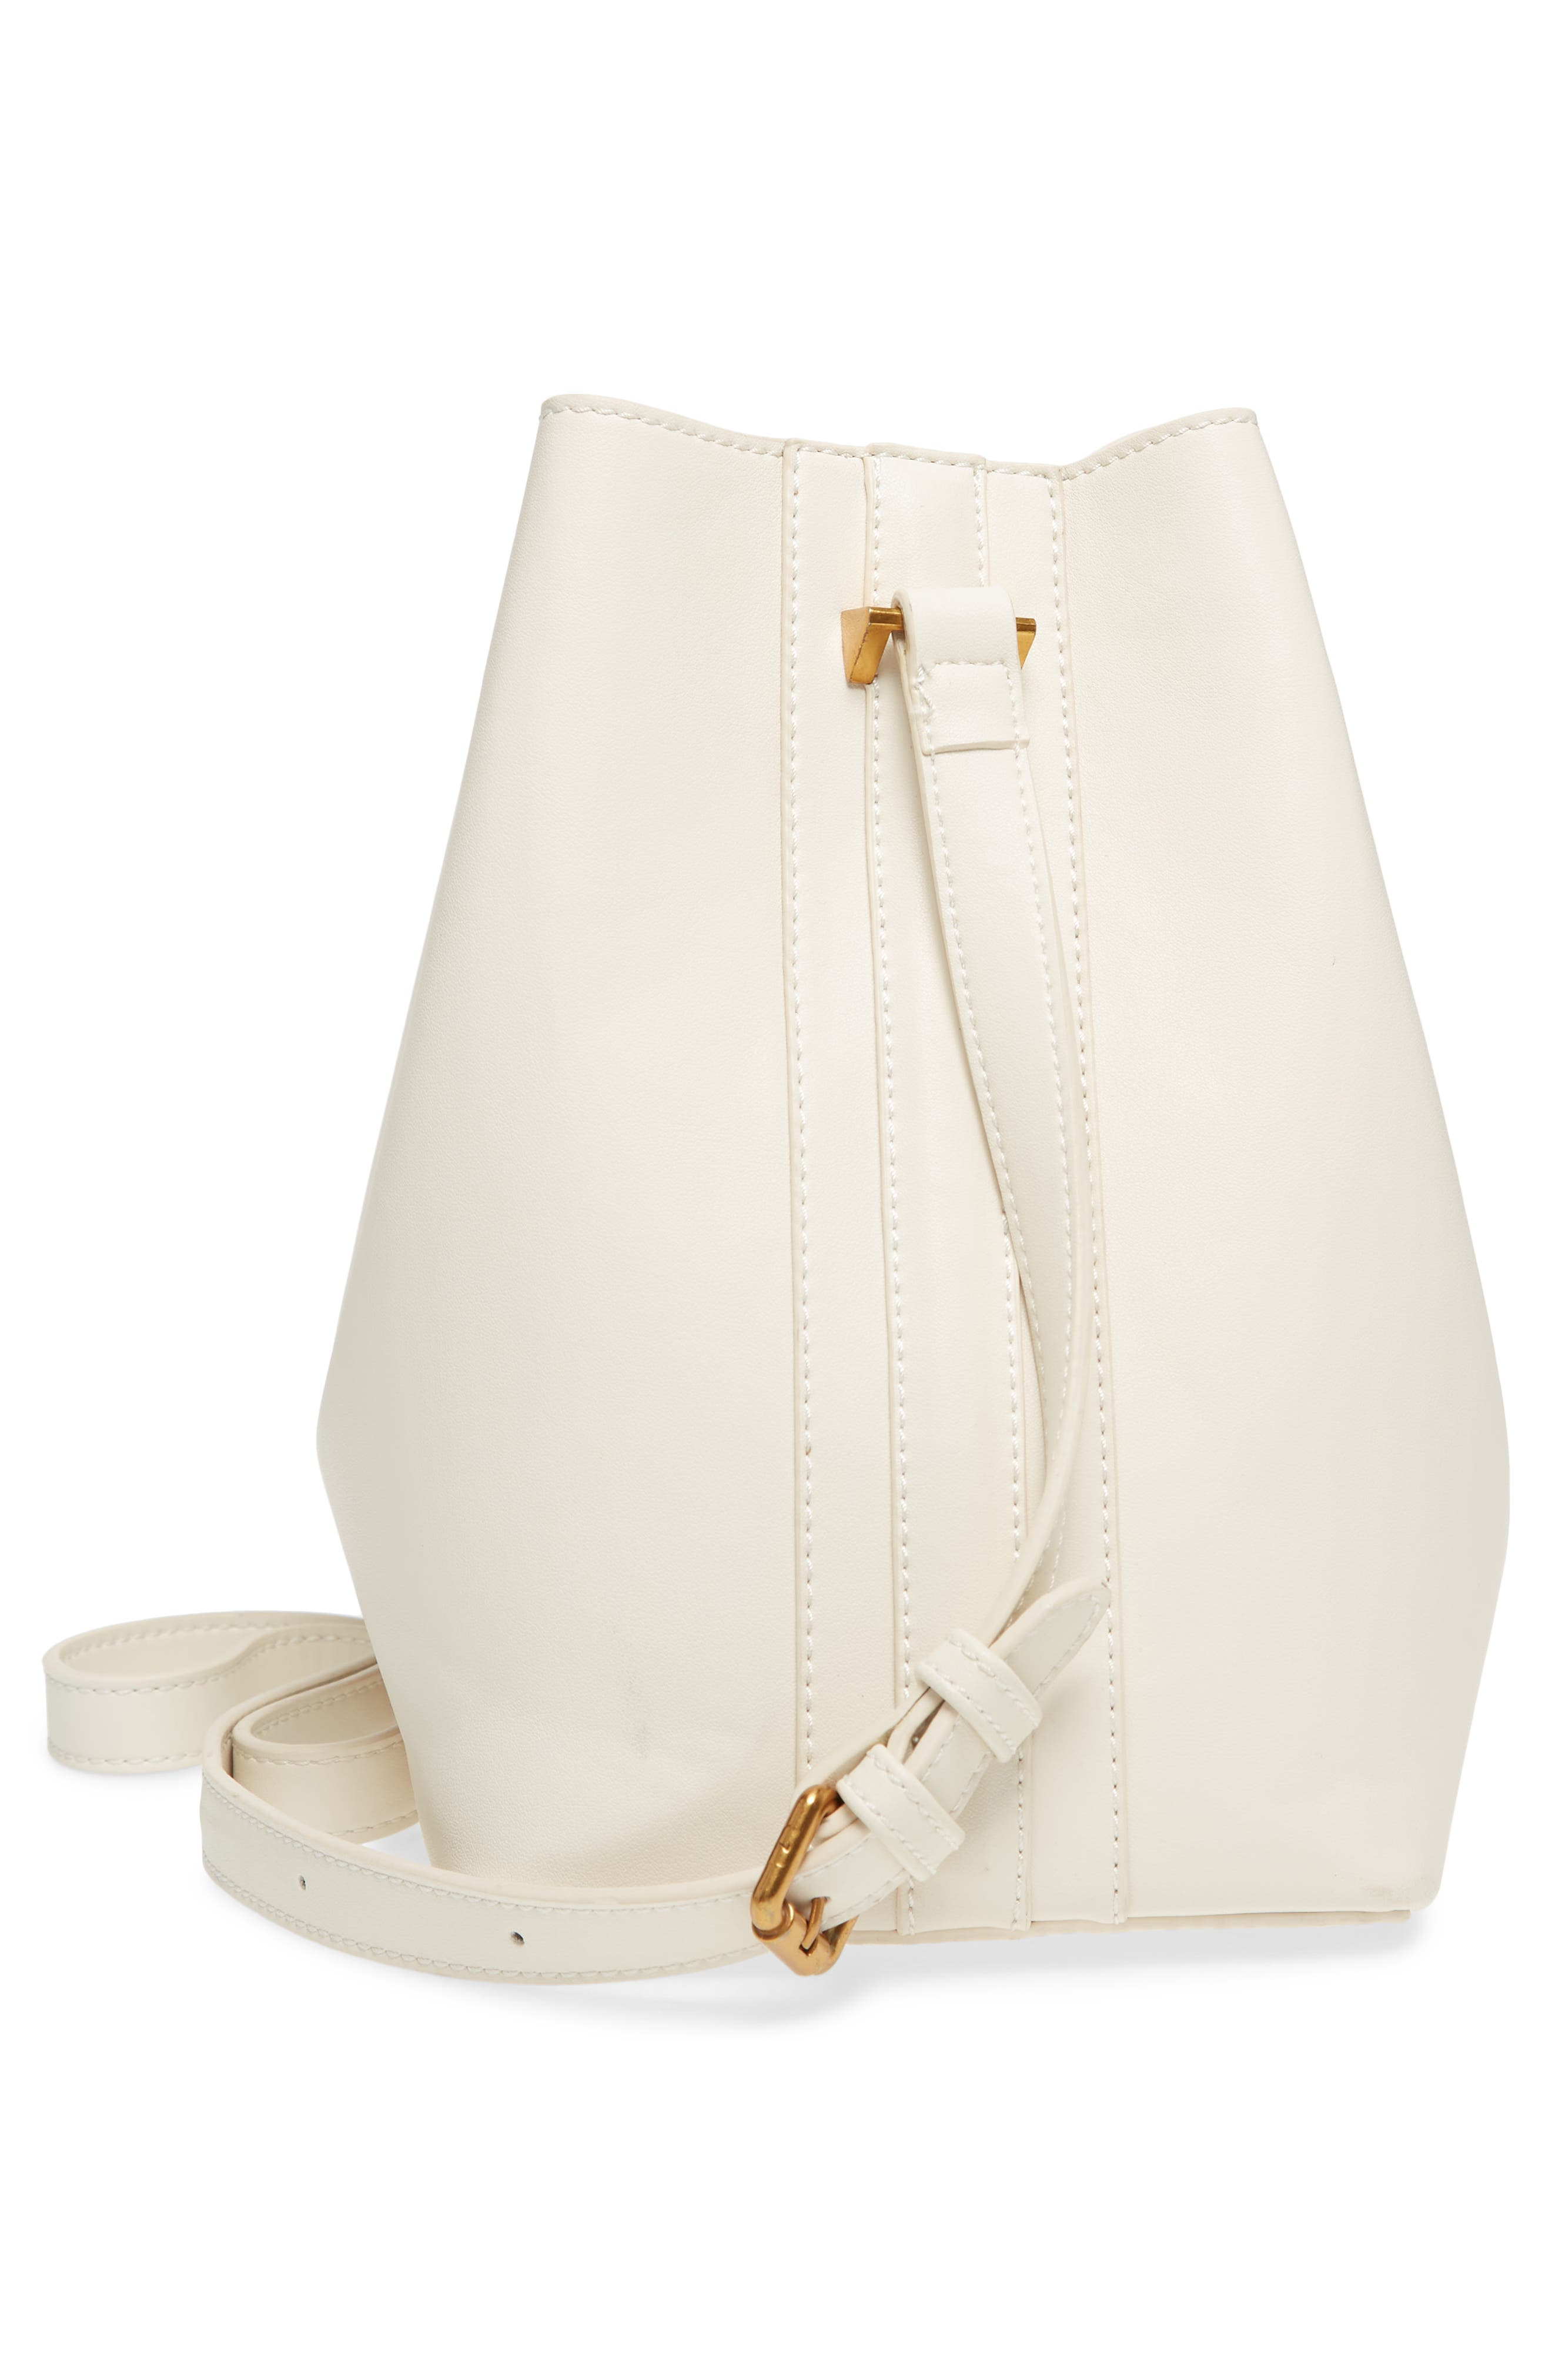 STREET LEVEL,                             Faux Leather Bucket Tote,                             Alternate thumbnail 5, color,                             100